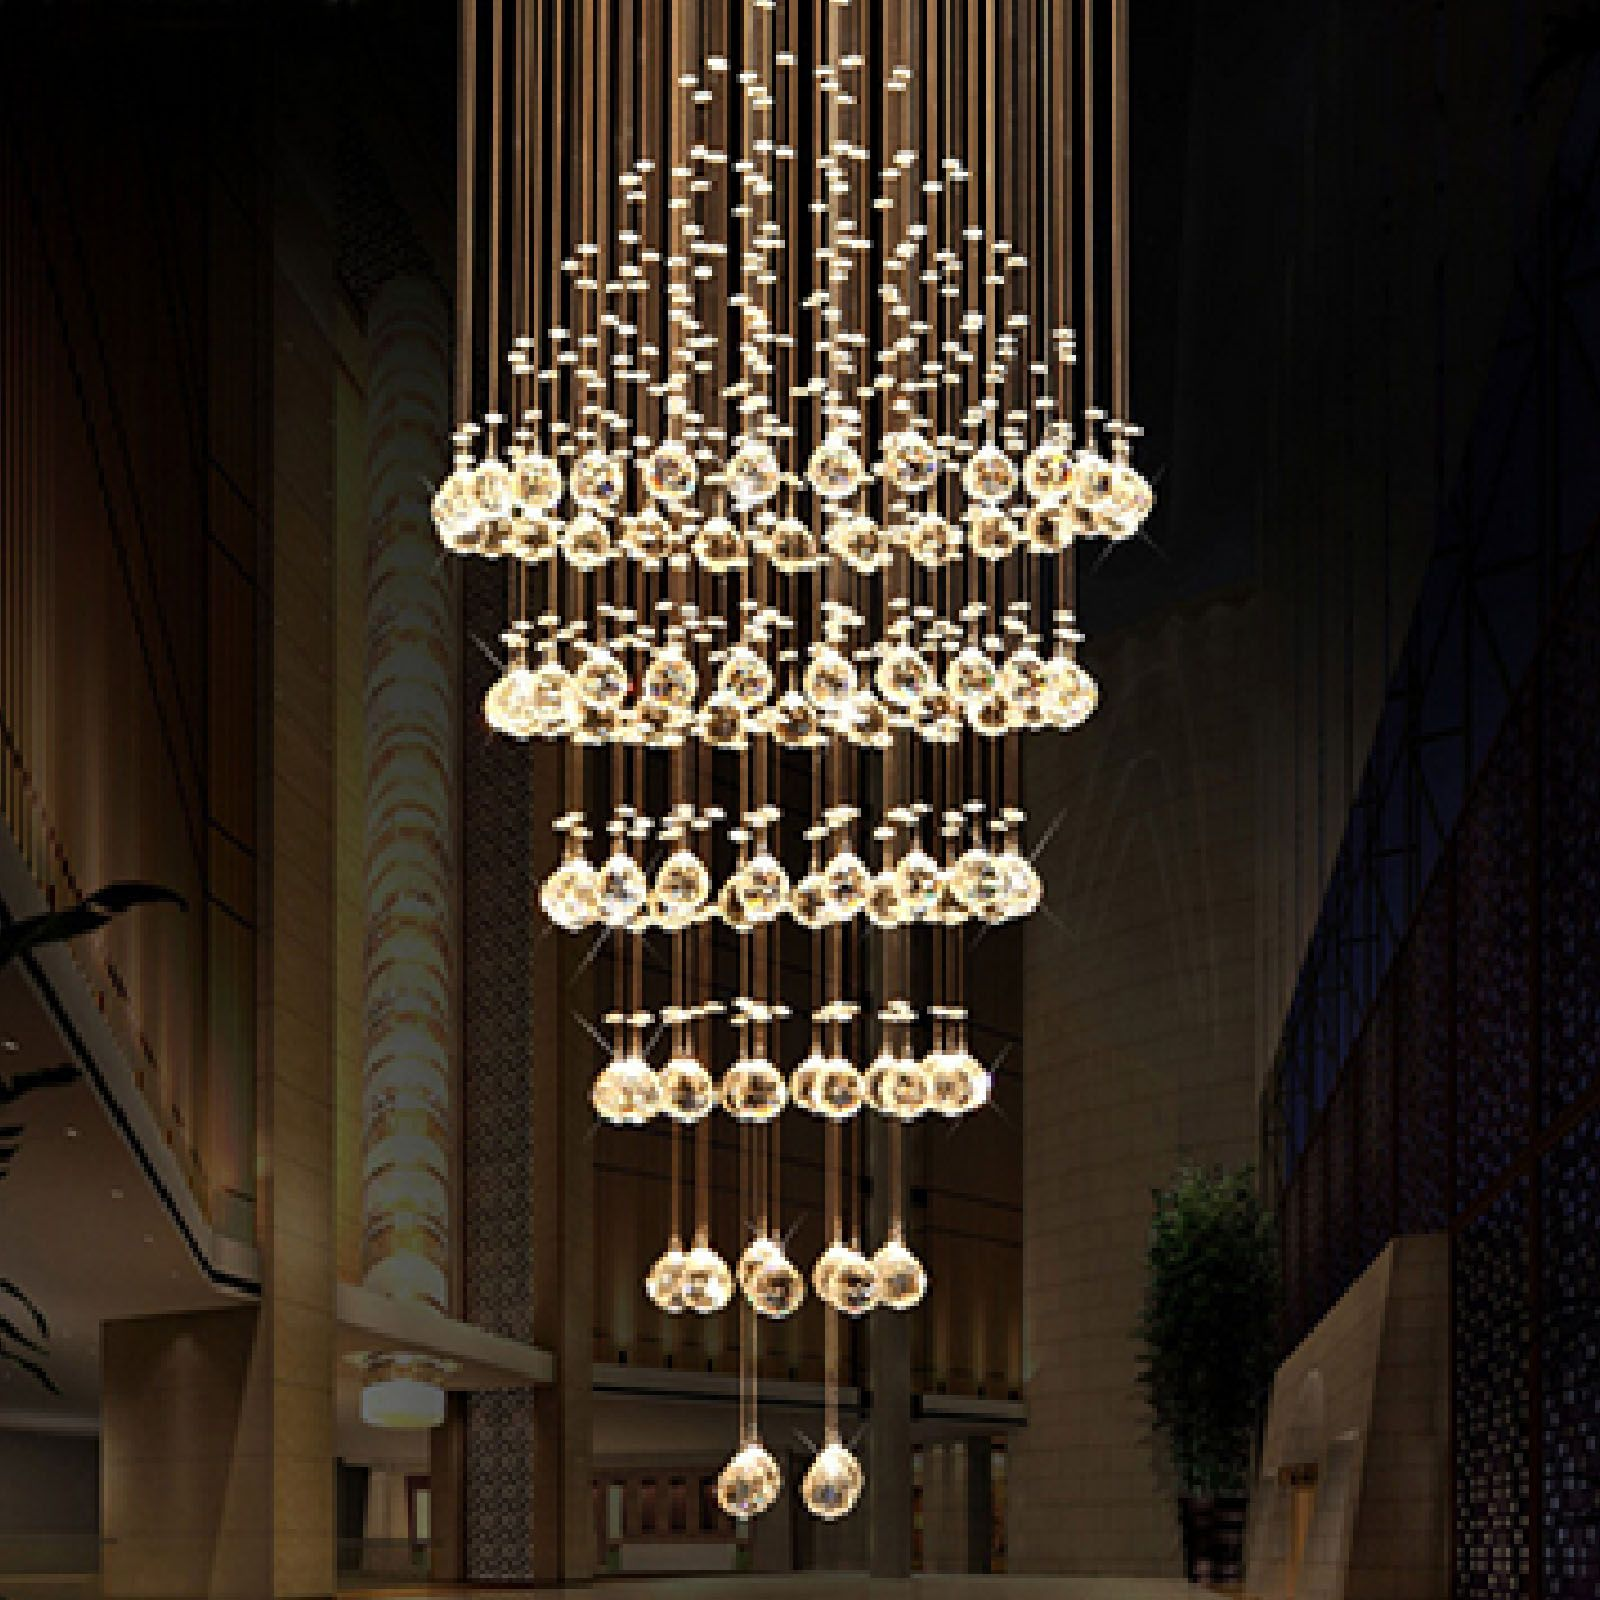 Byb Modern Chandelier Rain Drop Lighting Round Crystal Ball Fixture Pendant Ceiling Lamp Free